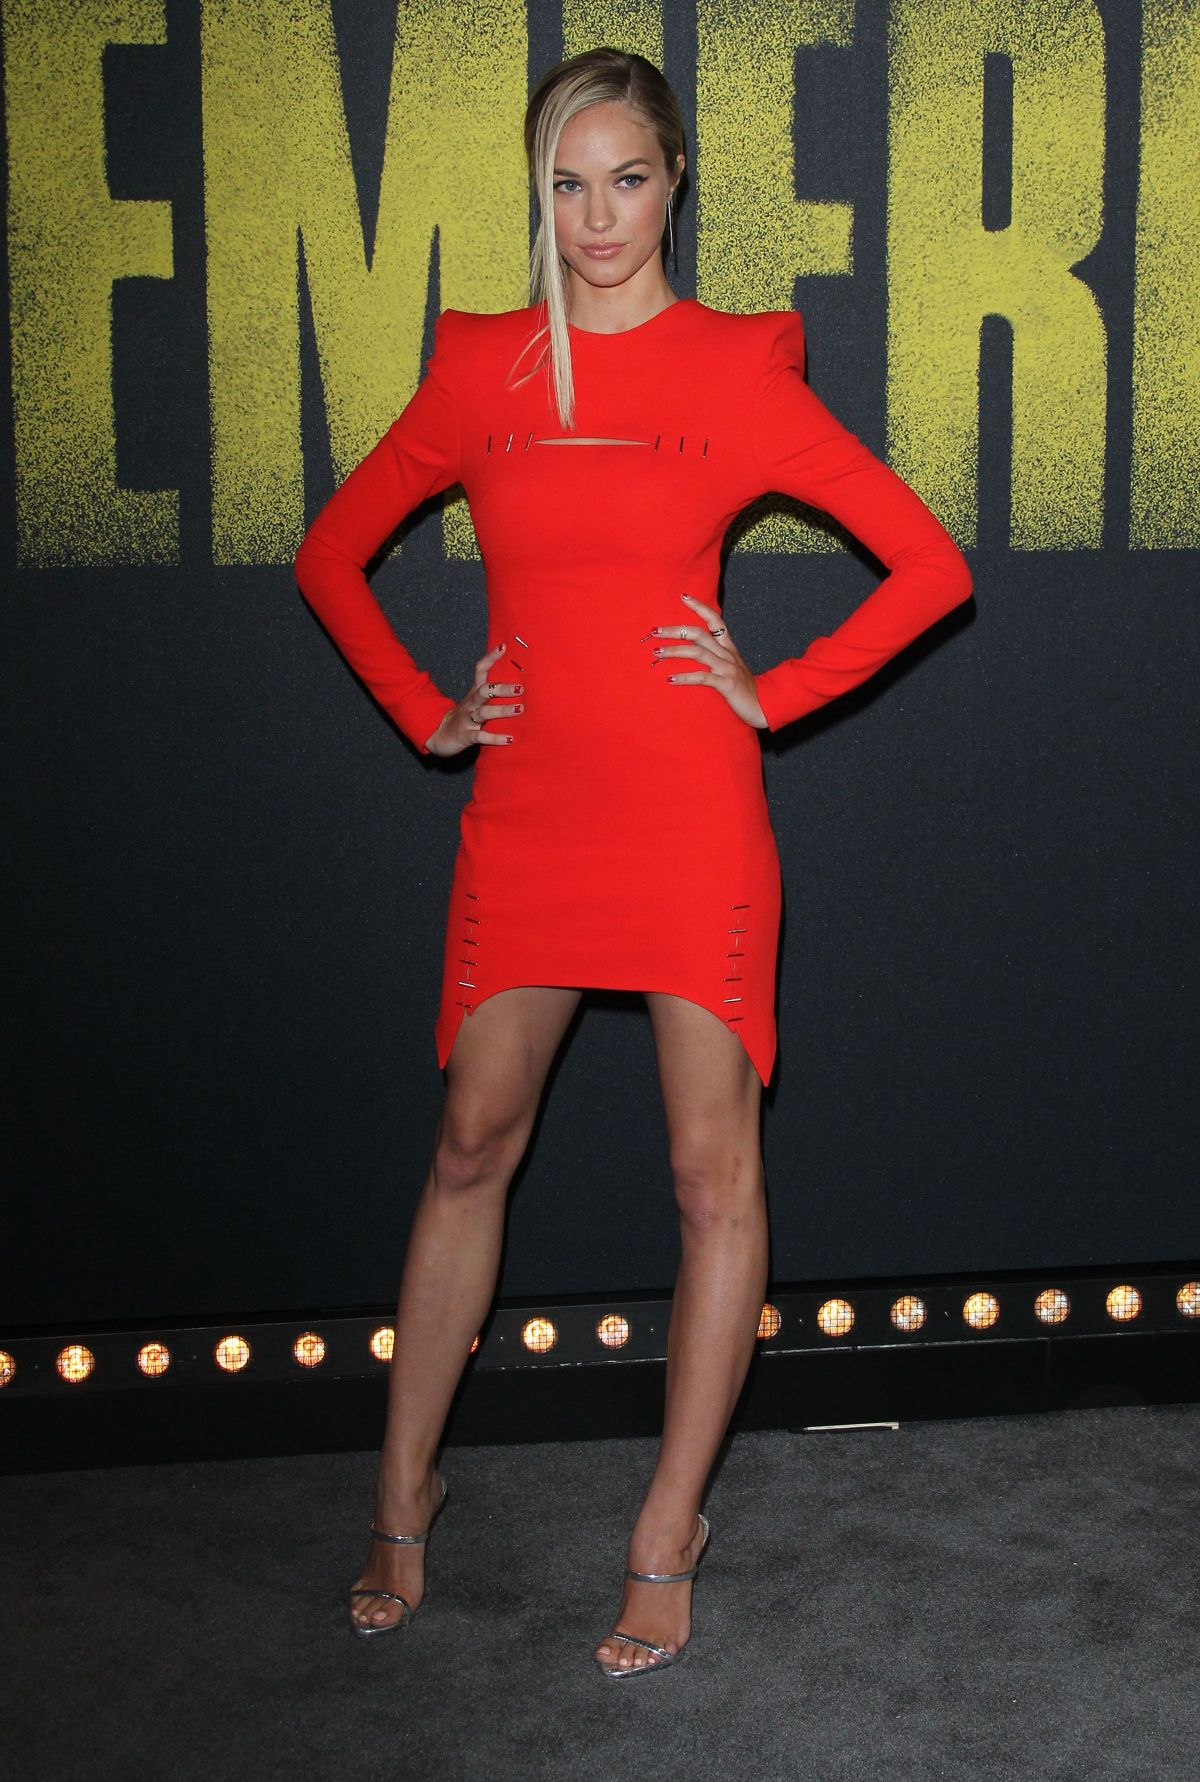 Alexis Knapp At Pitch Perfect 3 Premiere In LA